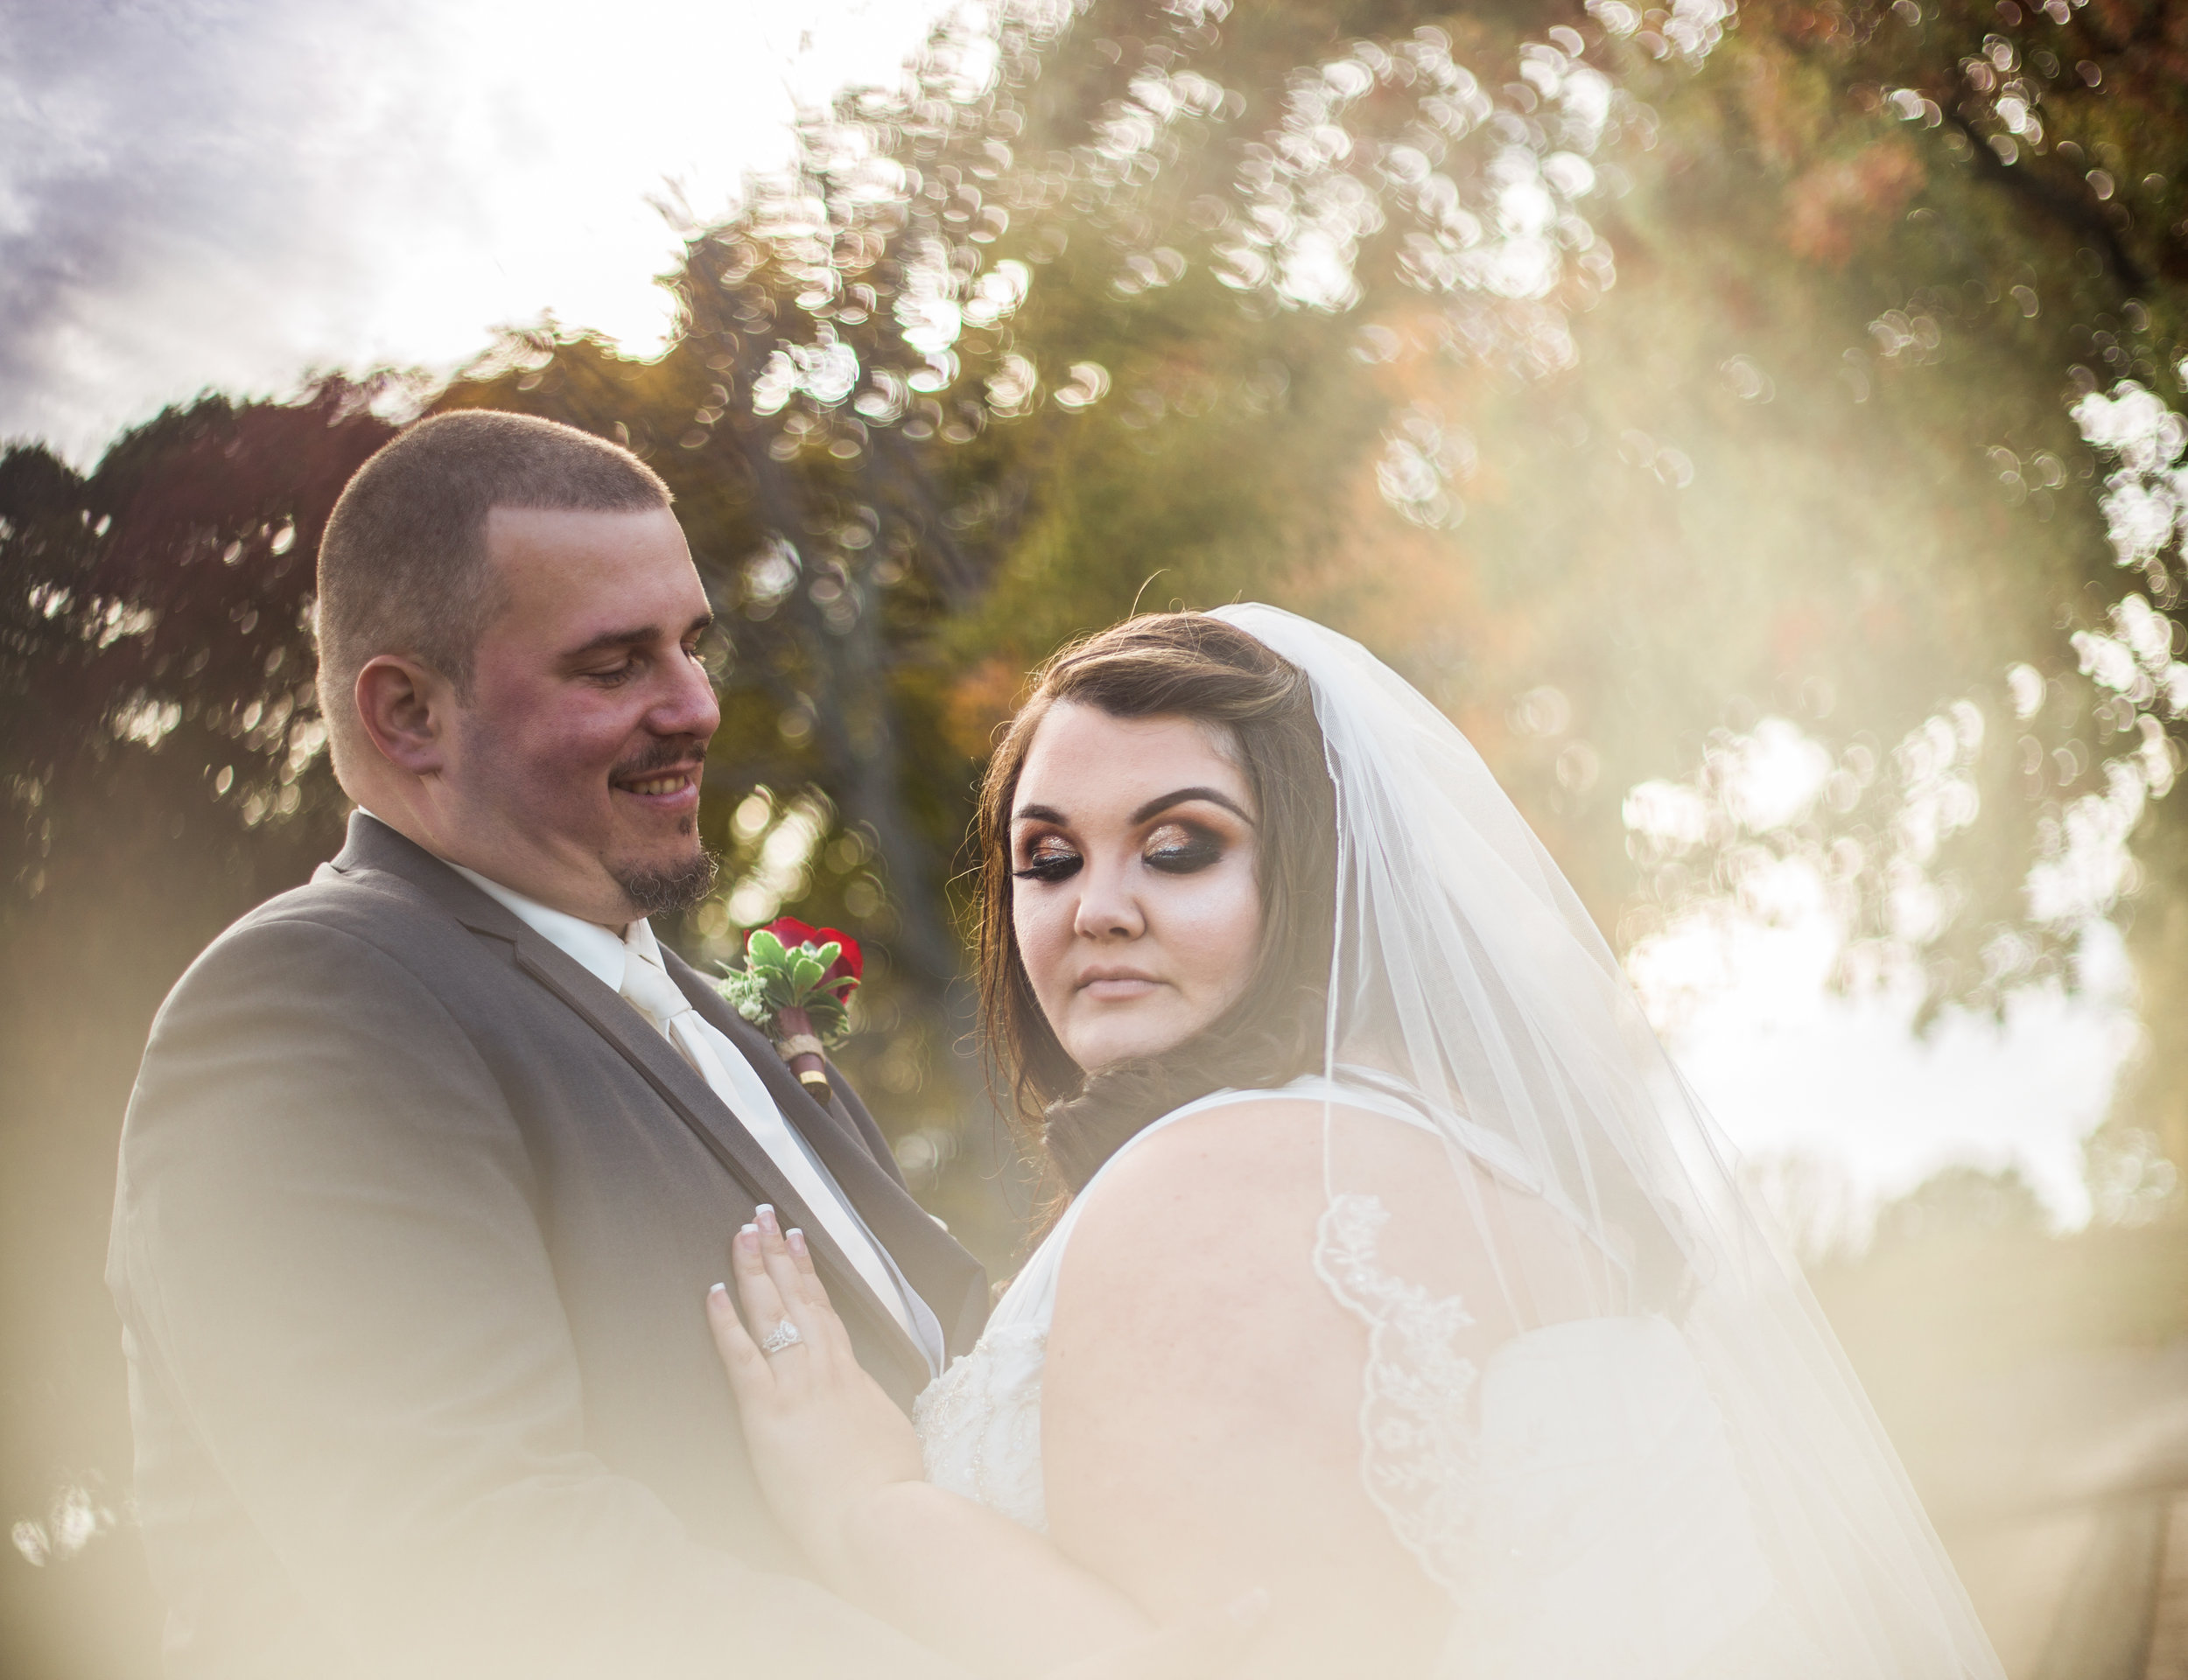 Sparrows Point Country Club Maryland photography Wedding Photographers Megapixels Media-62.jpg